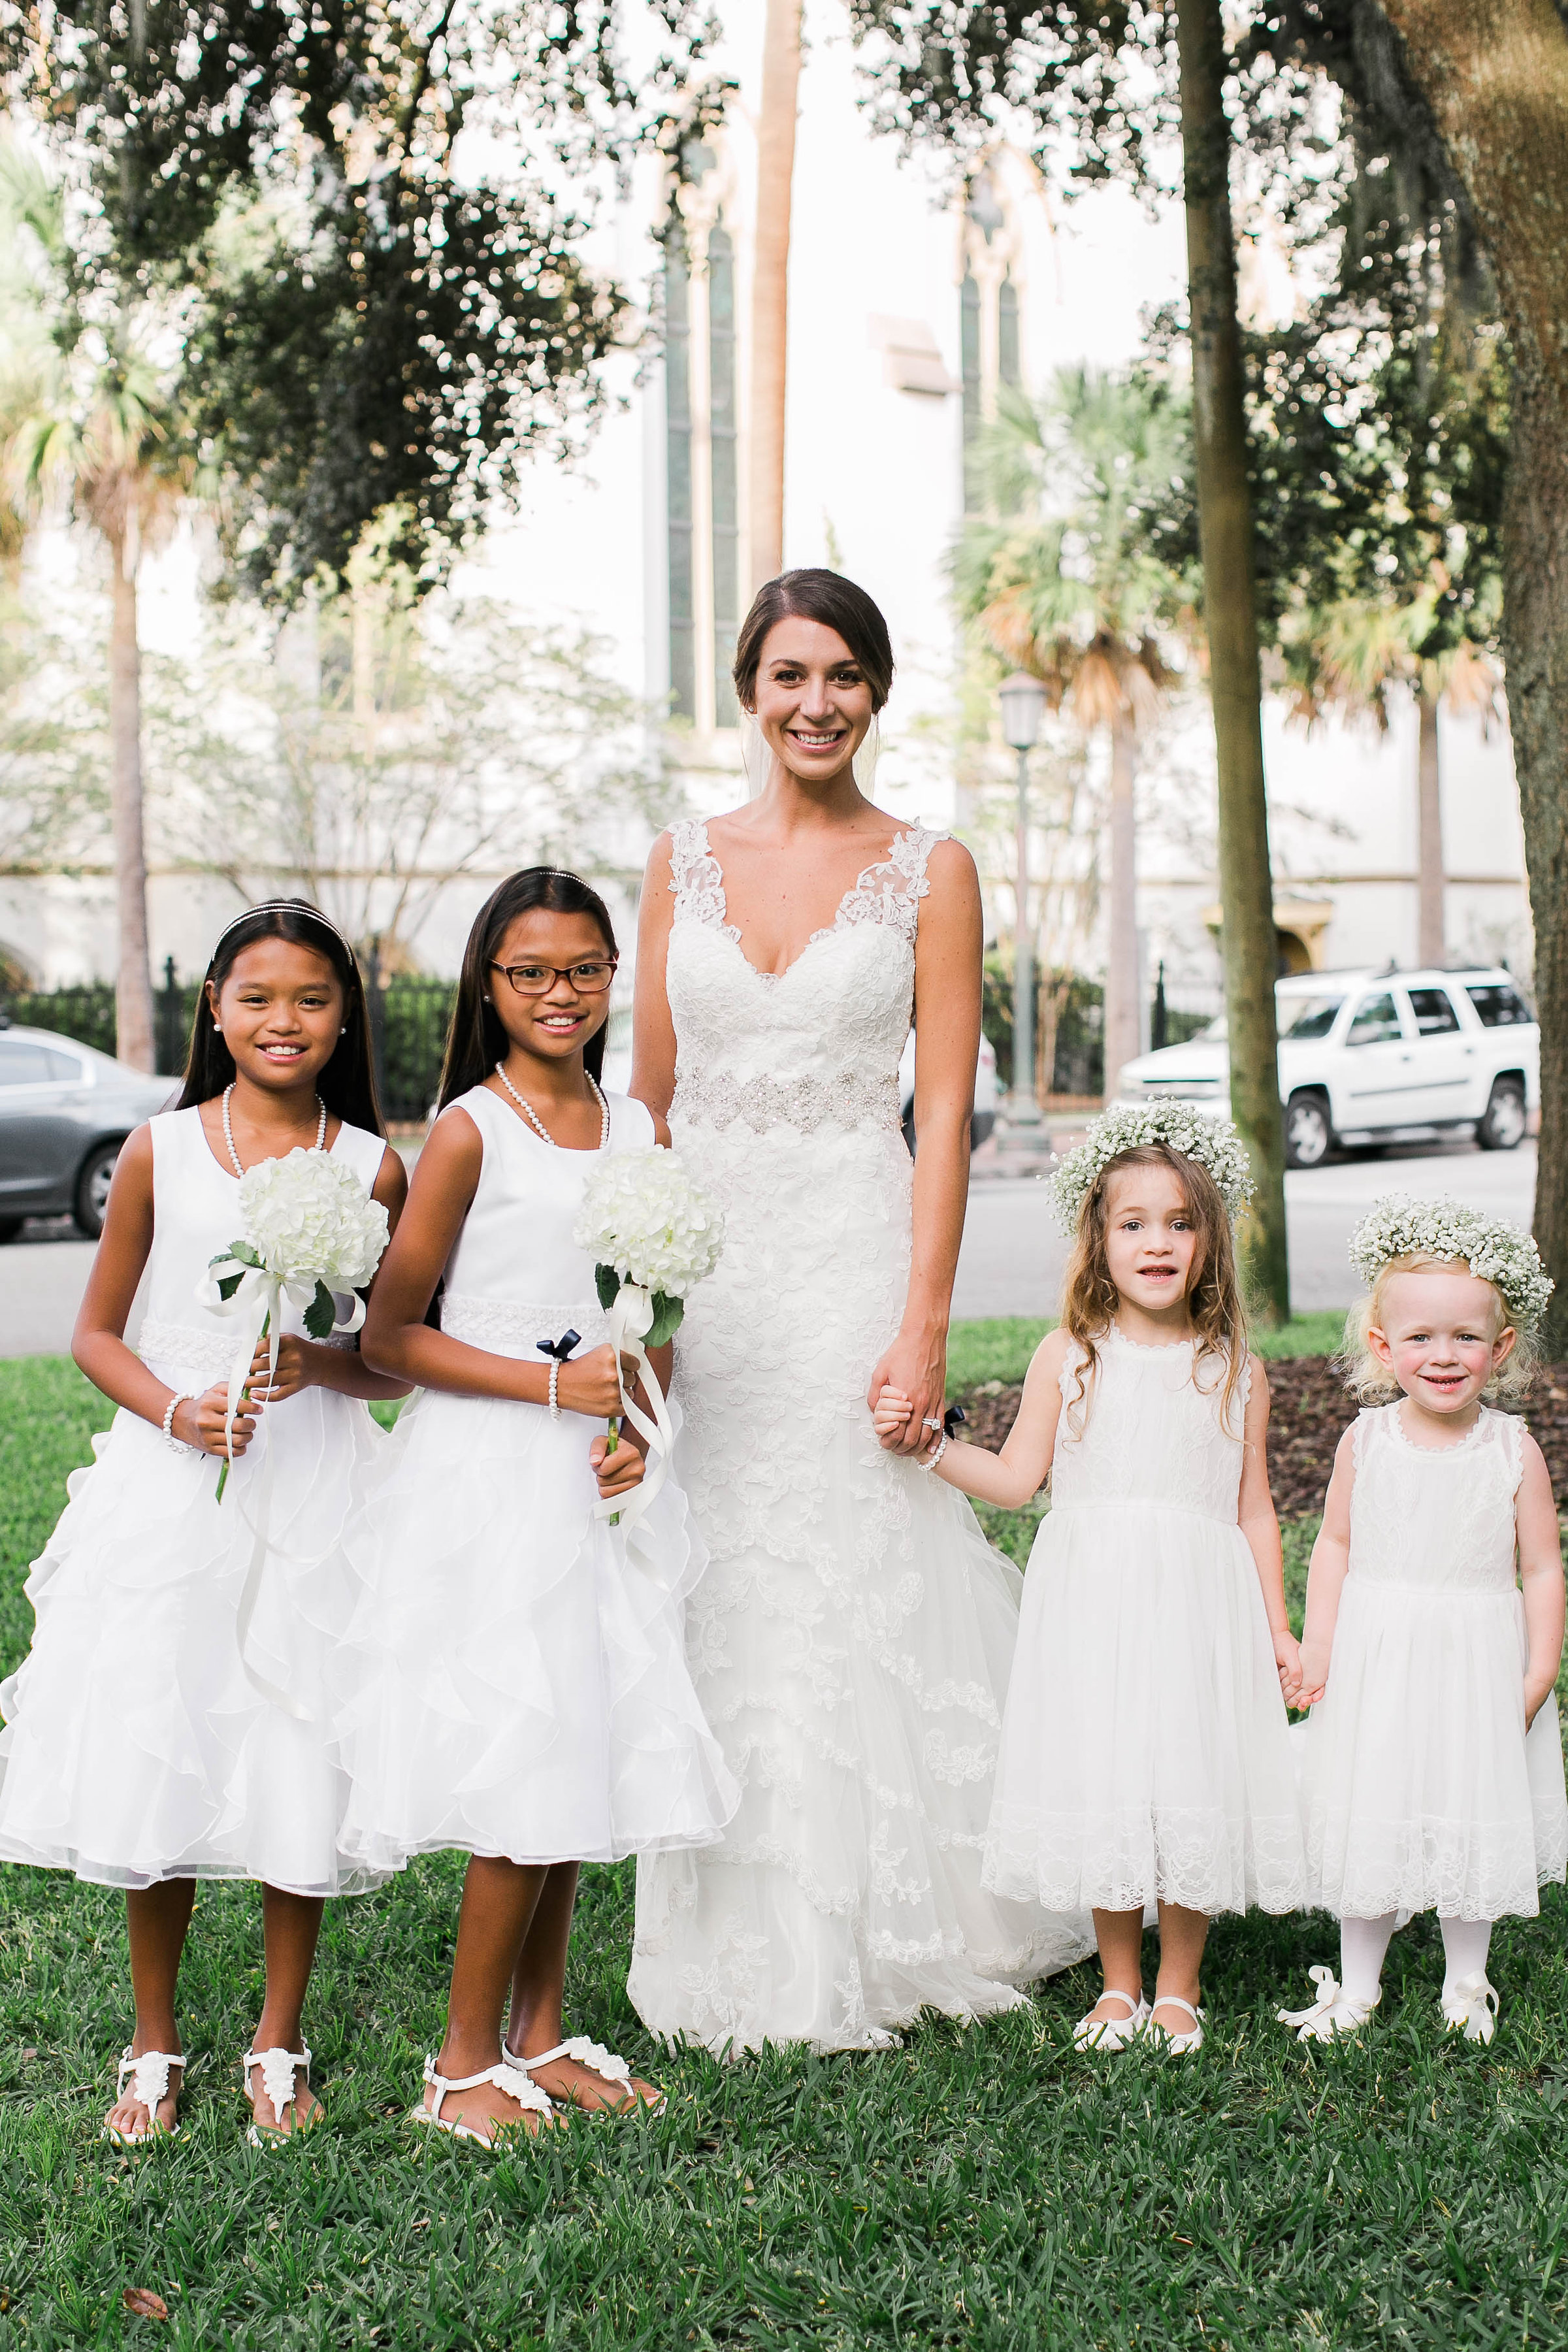 Bride in Martina Liana gown with flower girls